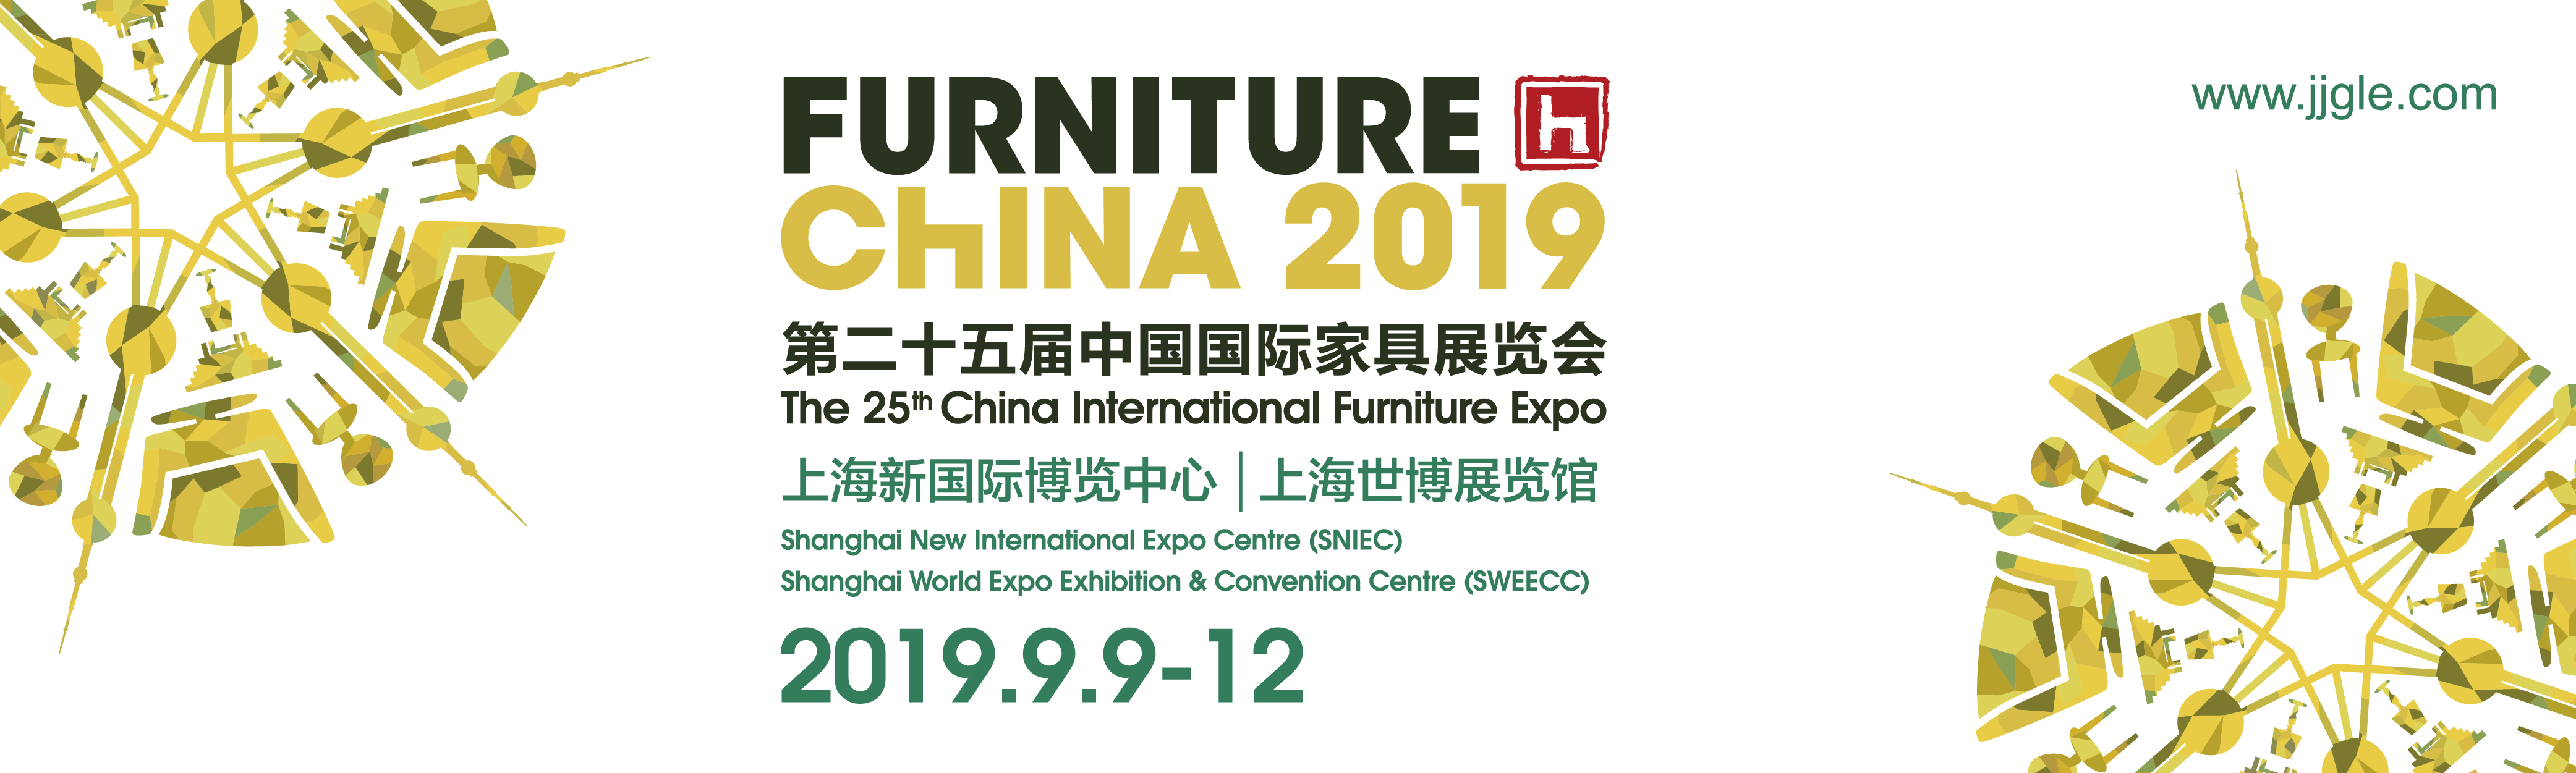 Furnture China 2019